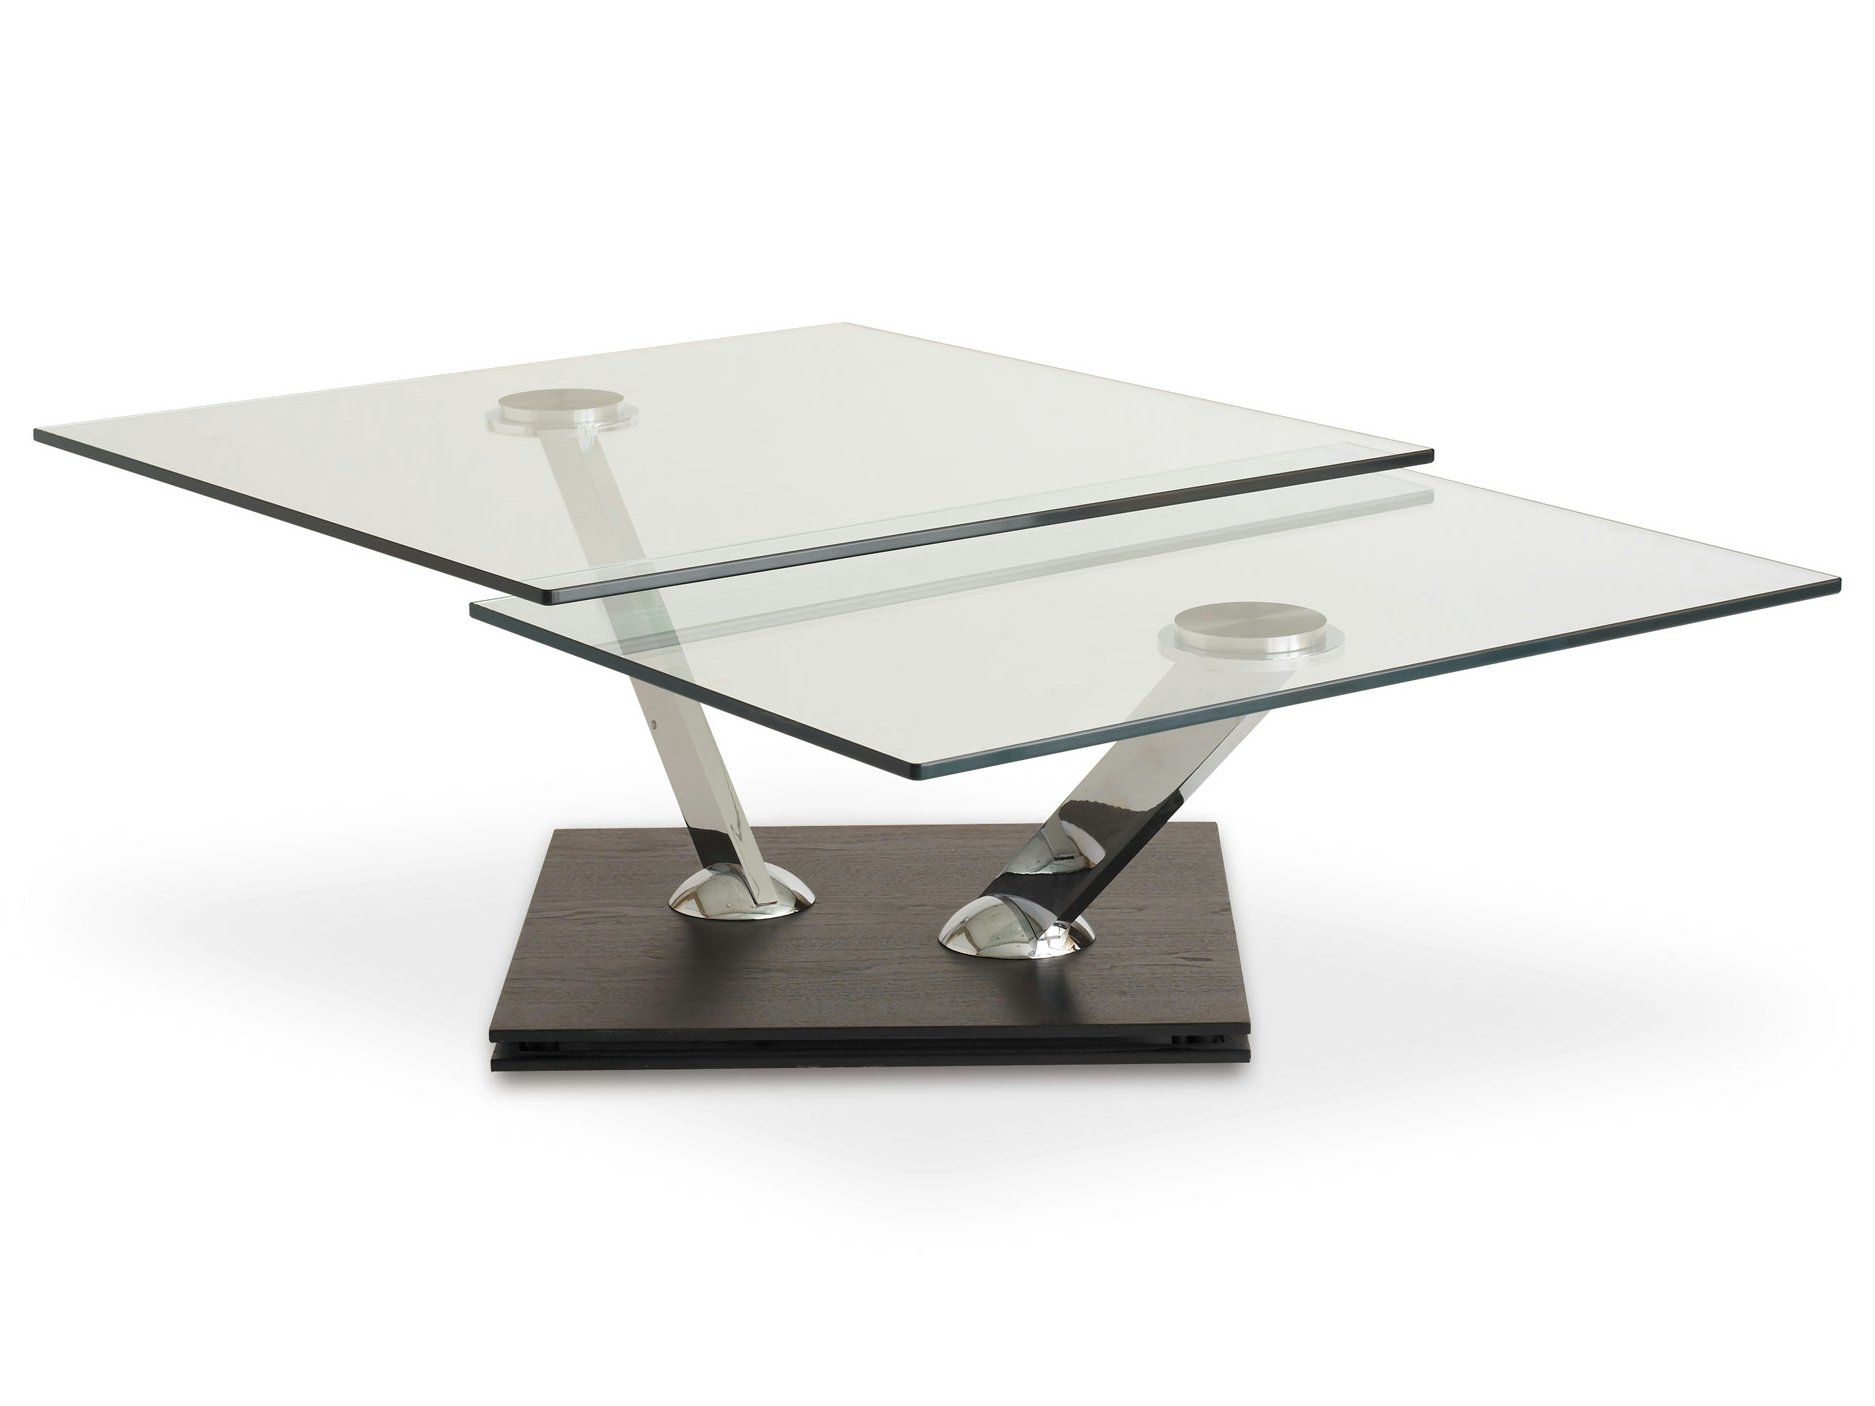 Square coffee table tea time by roche bobois design arnaldo gamba - Table basse roche bobois ...